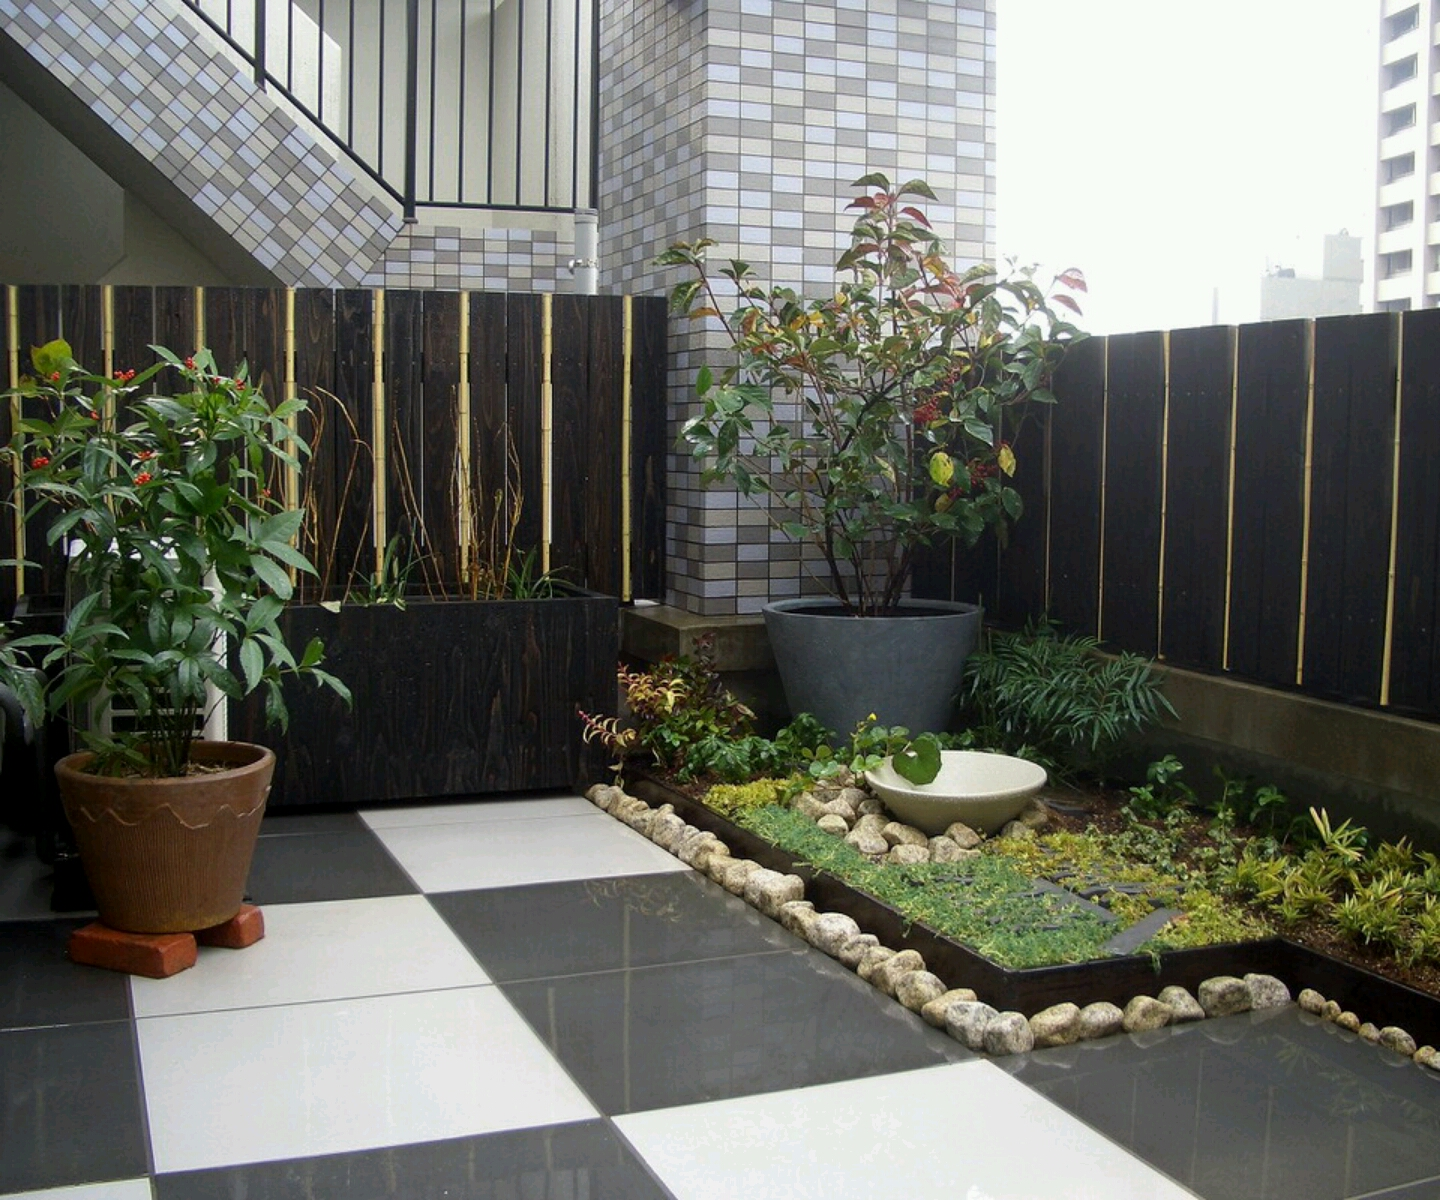 Ultra modern garden design inspiration interior designs for Modern garden ideas